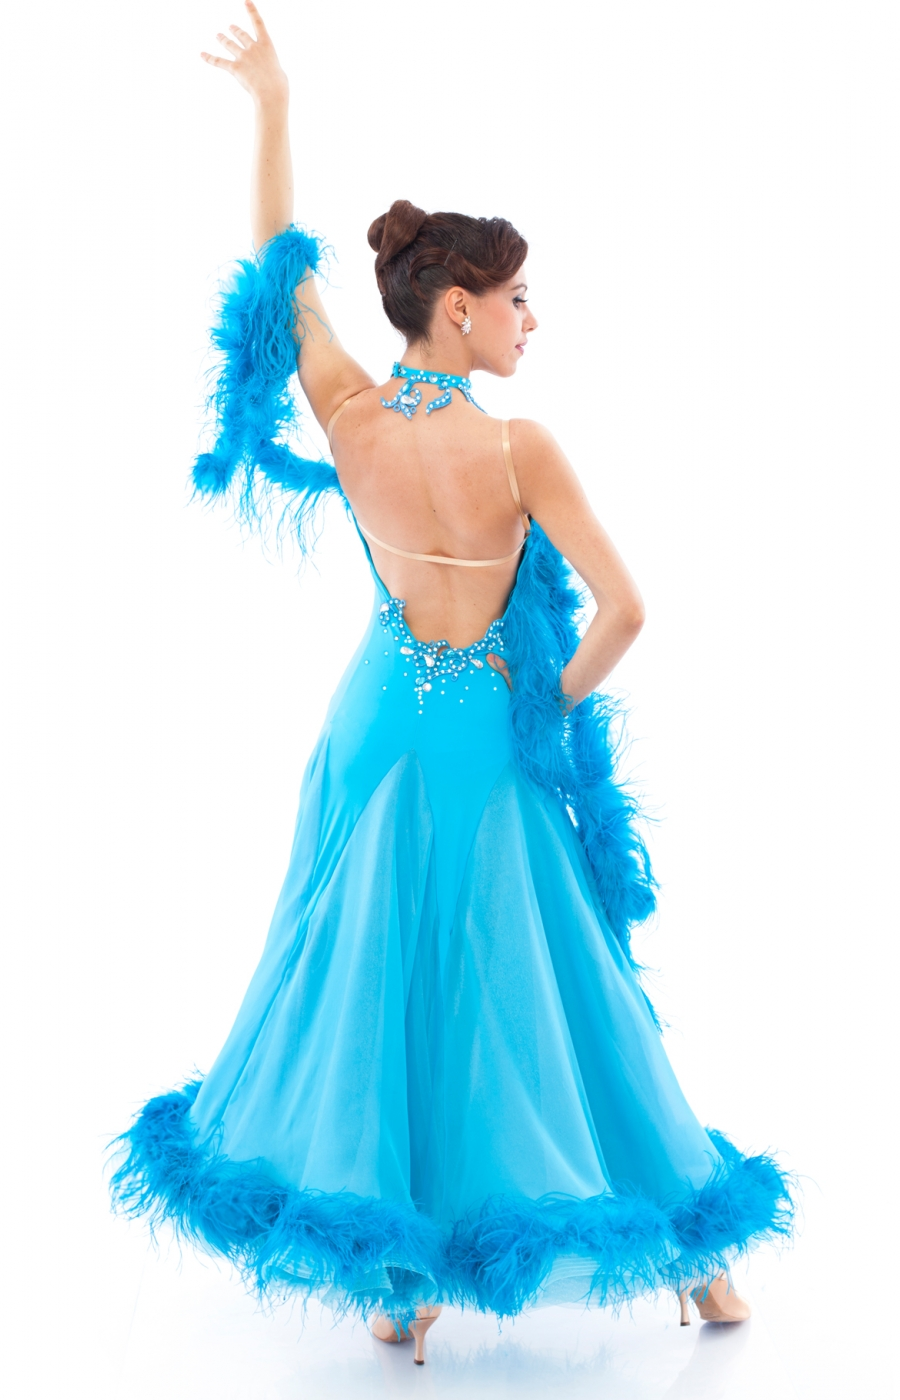 Women Ballroom Dress Blue Lagoon